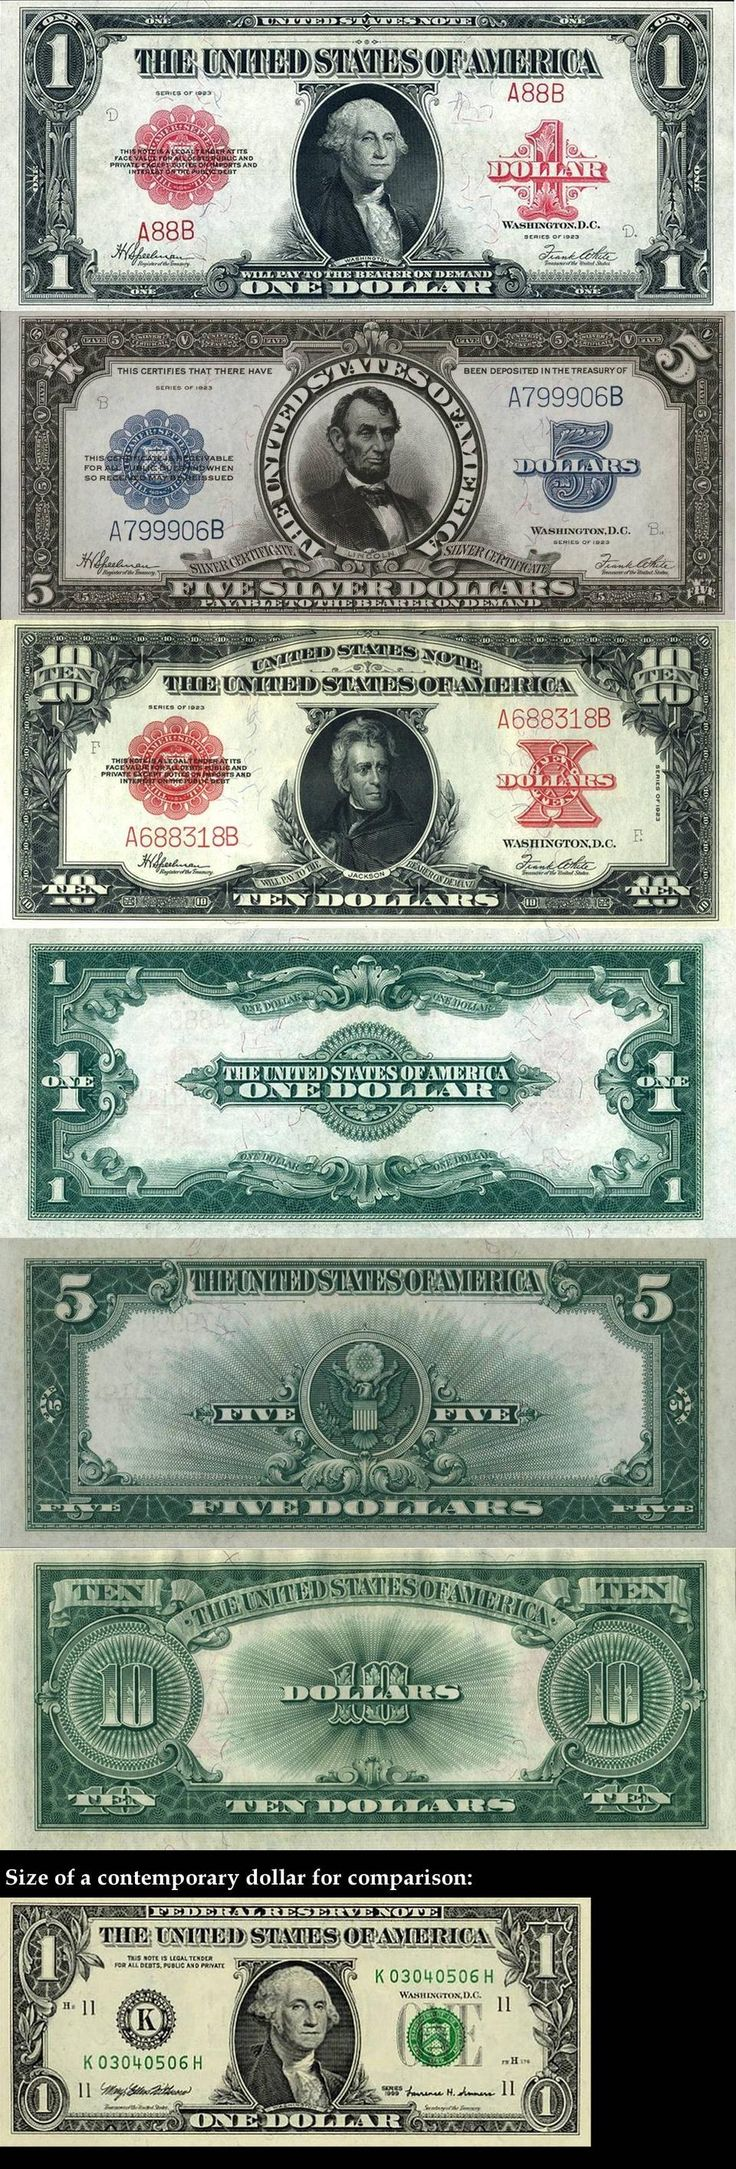 history of paper currency in the united states The united states treasury announced plans wednesday to put a woman on the $10 bill the change, which will happen in 2020, is notable not just because a woman will be on paper currency but also .